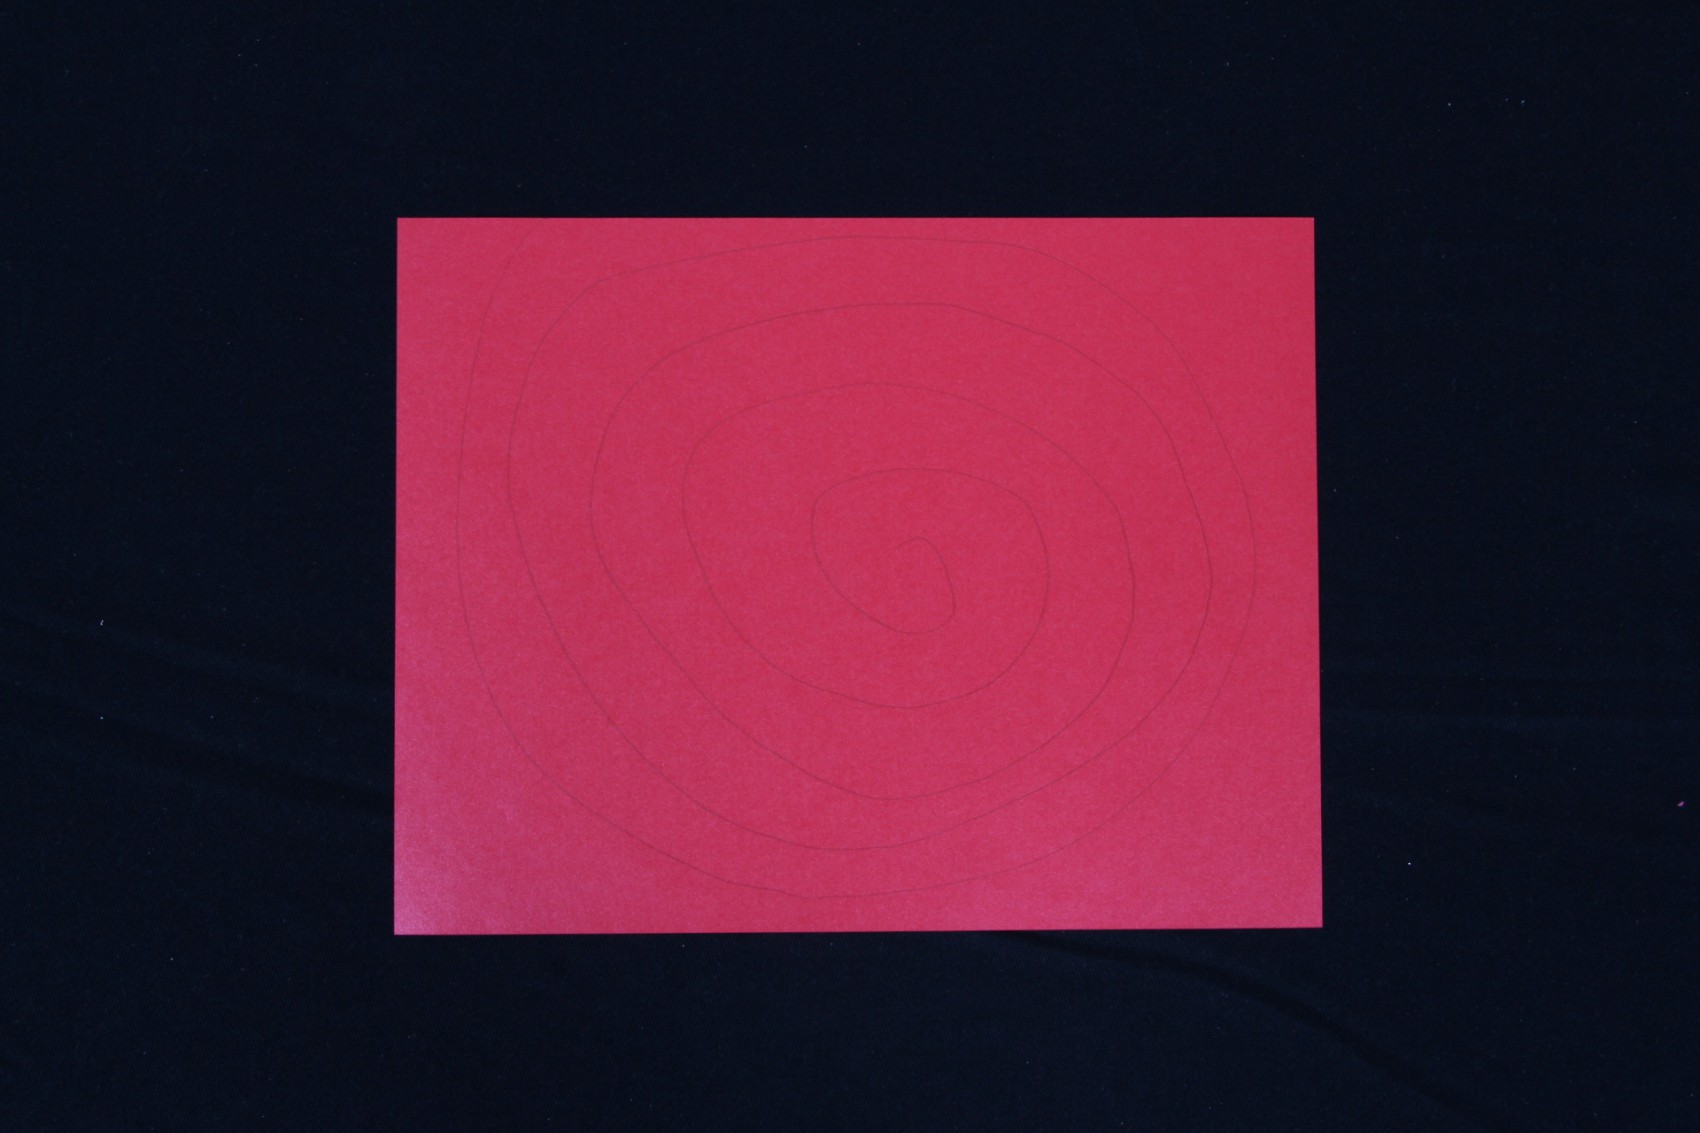 Red paper, spiral drawn on